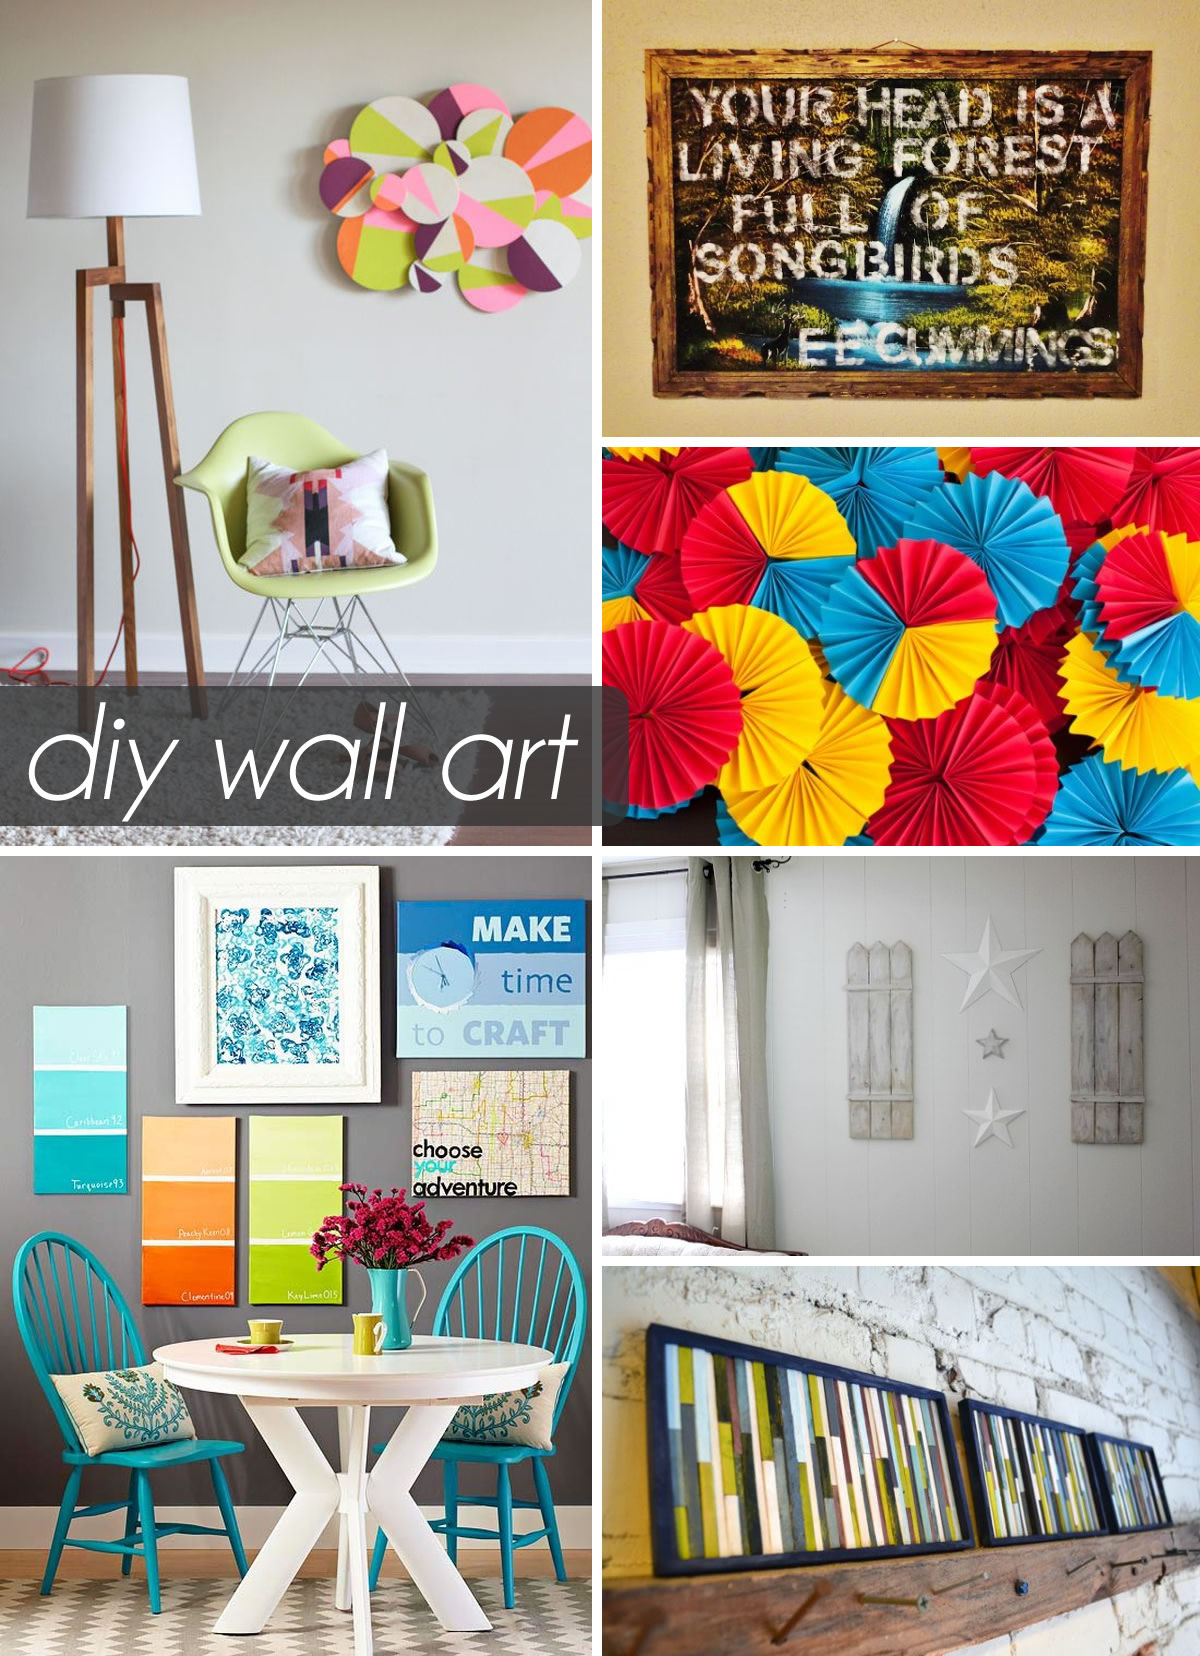 Bedroom wall decor ideas diy - Bedroom Wall Decor Ideas Diy 1